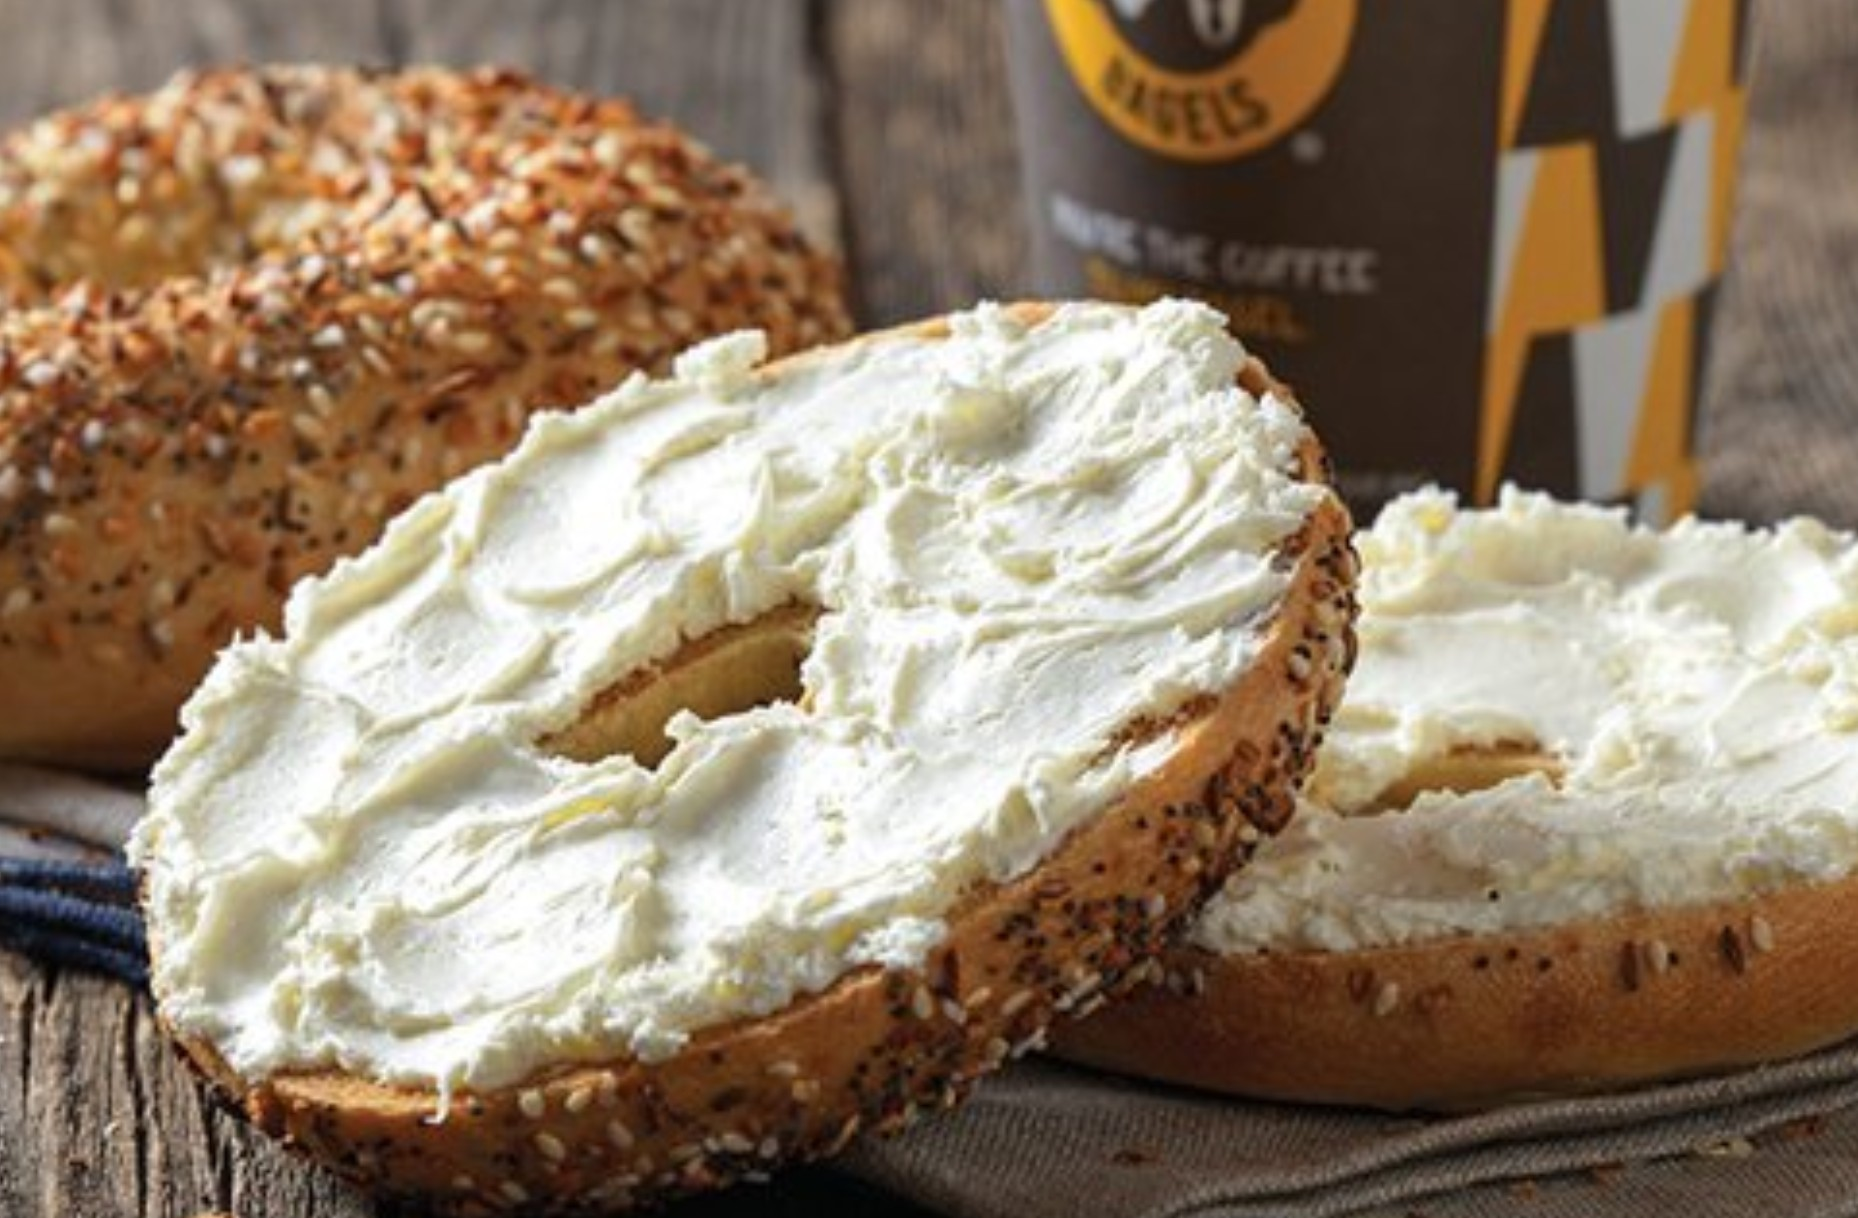 A bagel with cream cheese